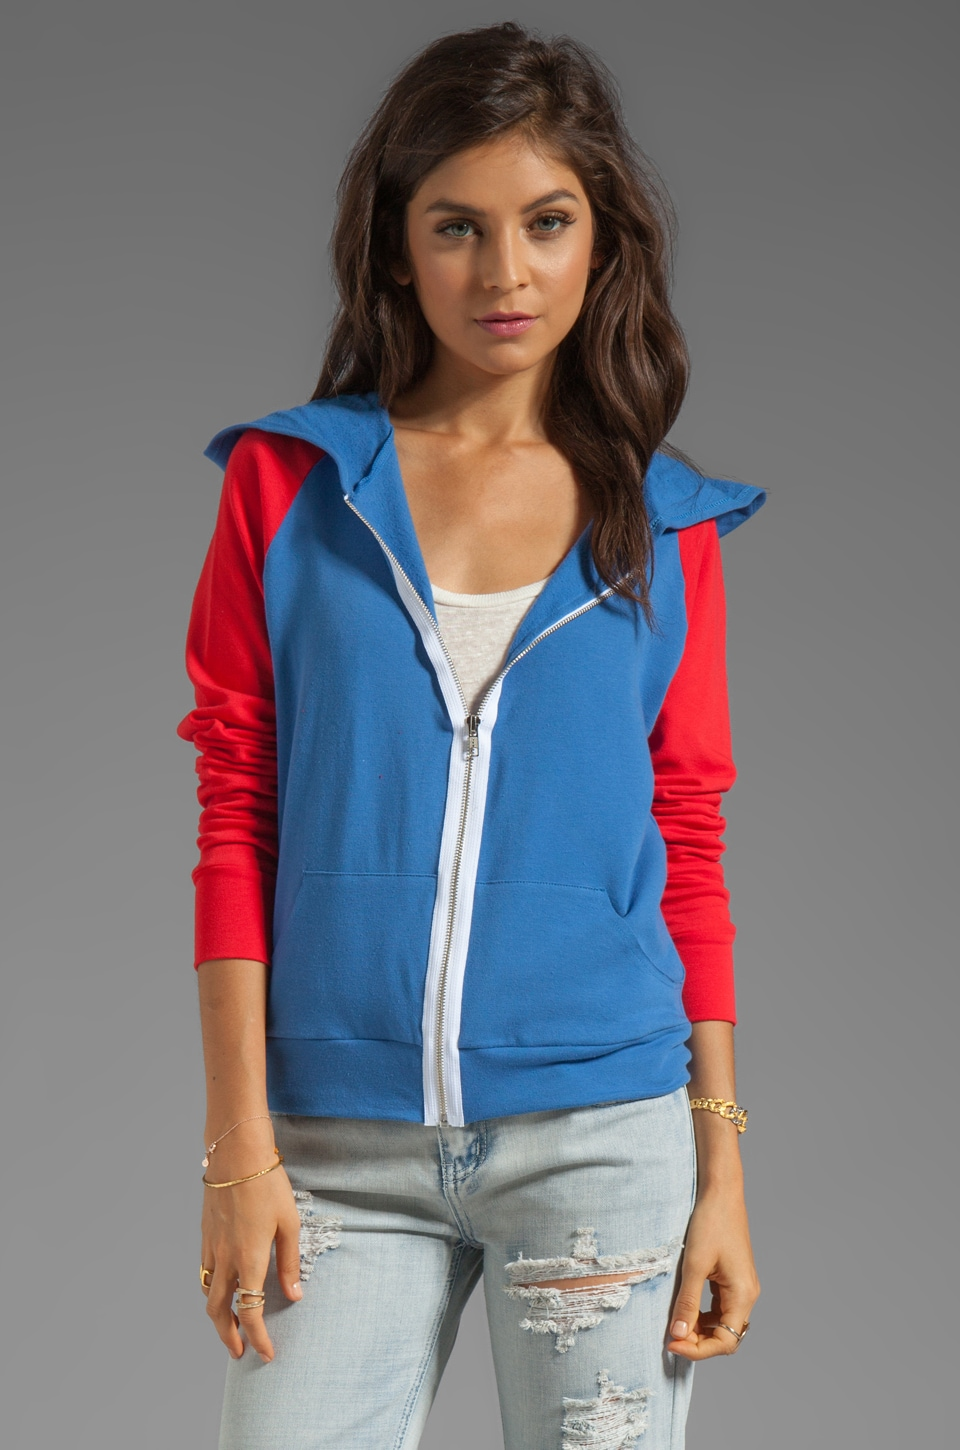 Blue Life Sweatshirt Hoodie in Red Flag